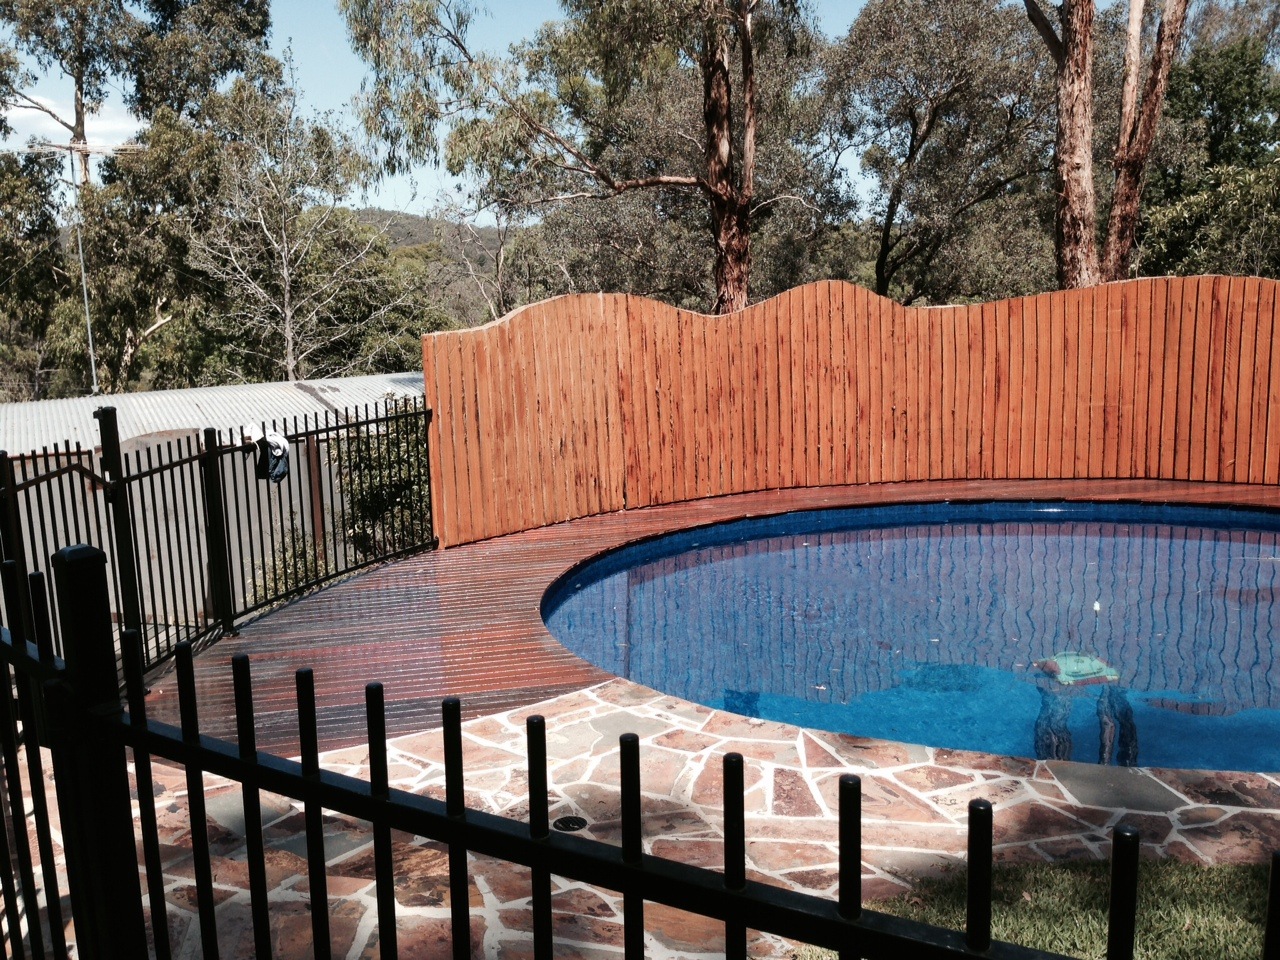 Hardwood decking around pool